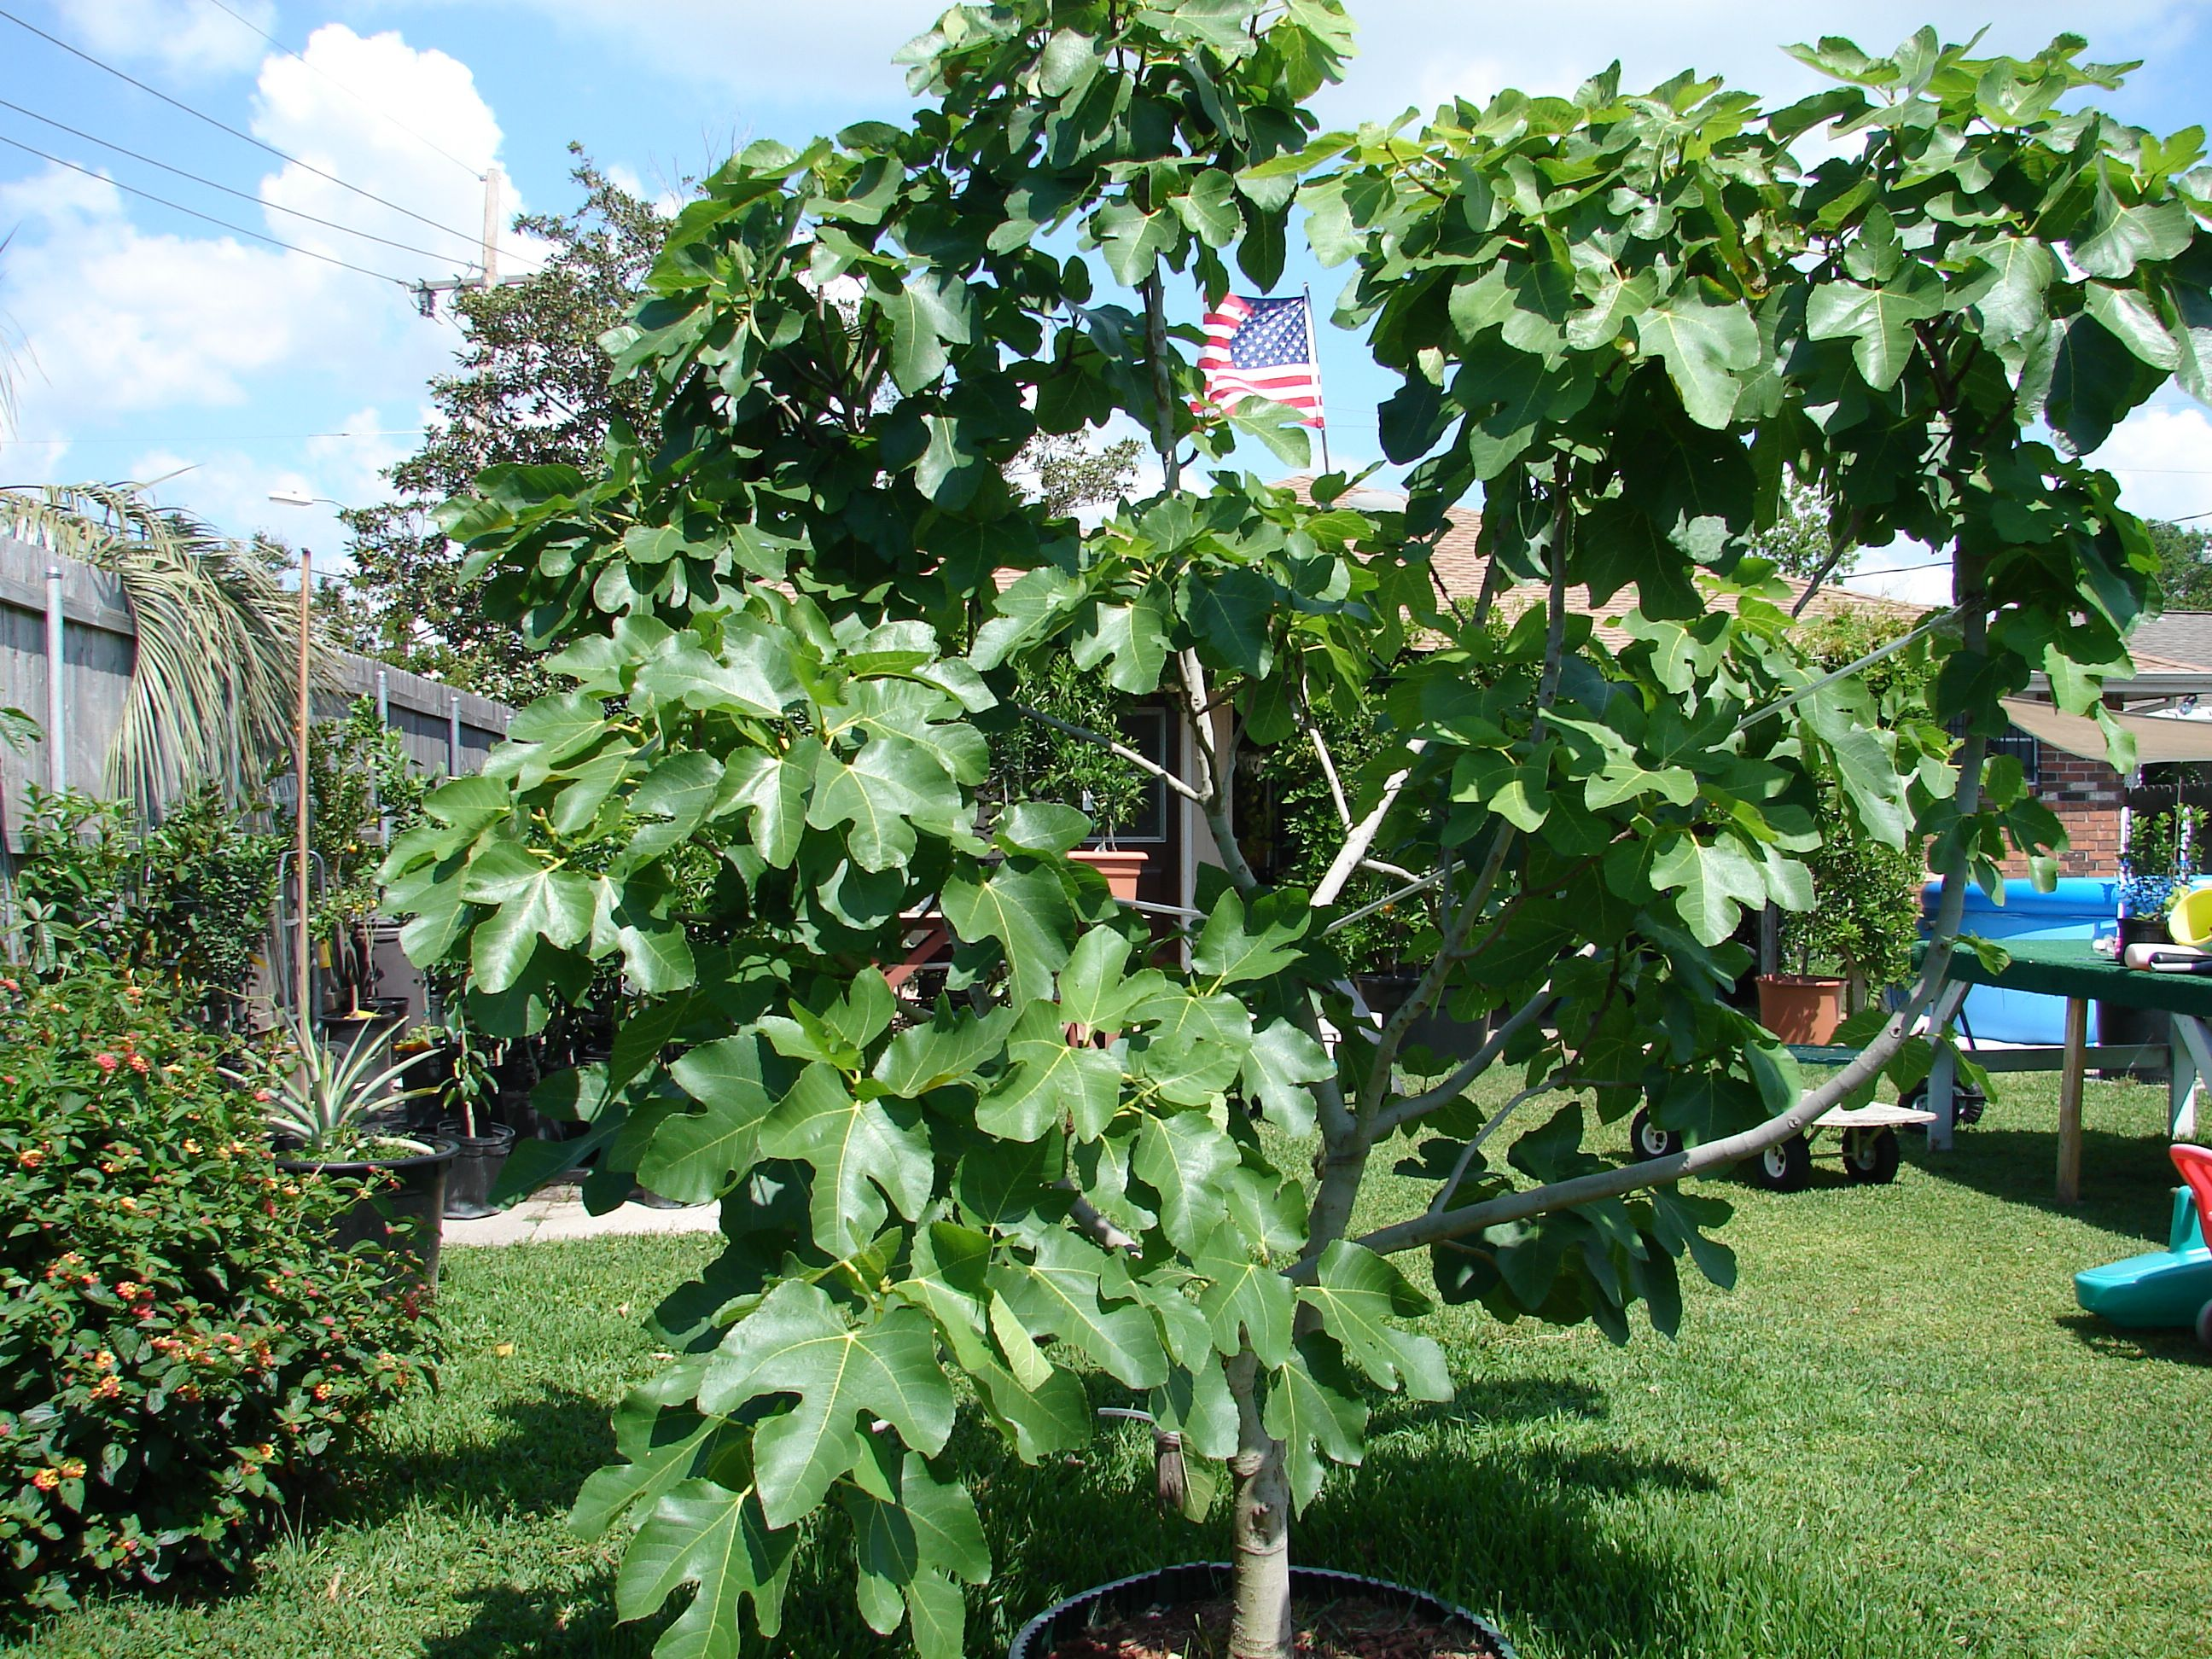 183 best images about Fig Trees on Pinterest | Trees, The fig and ...